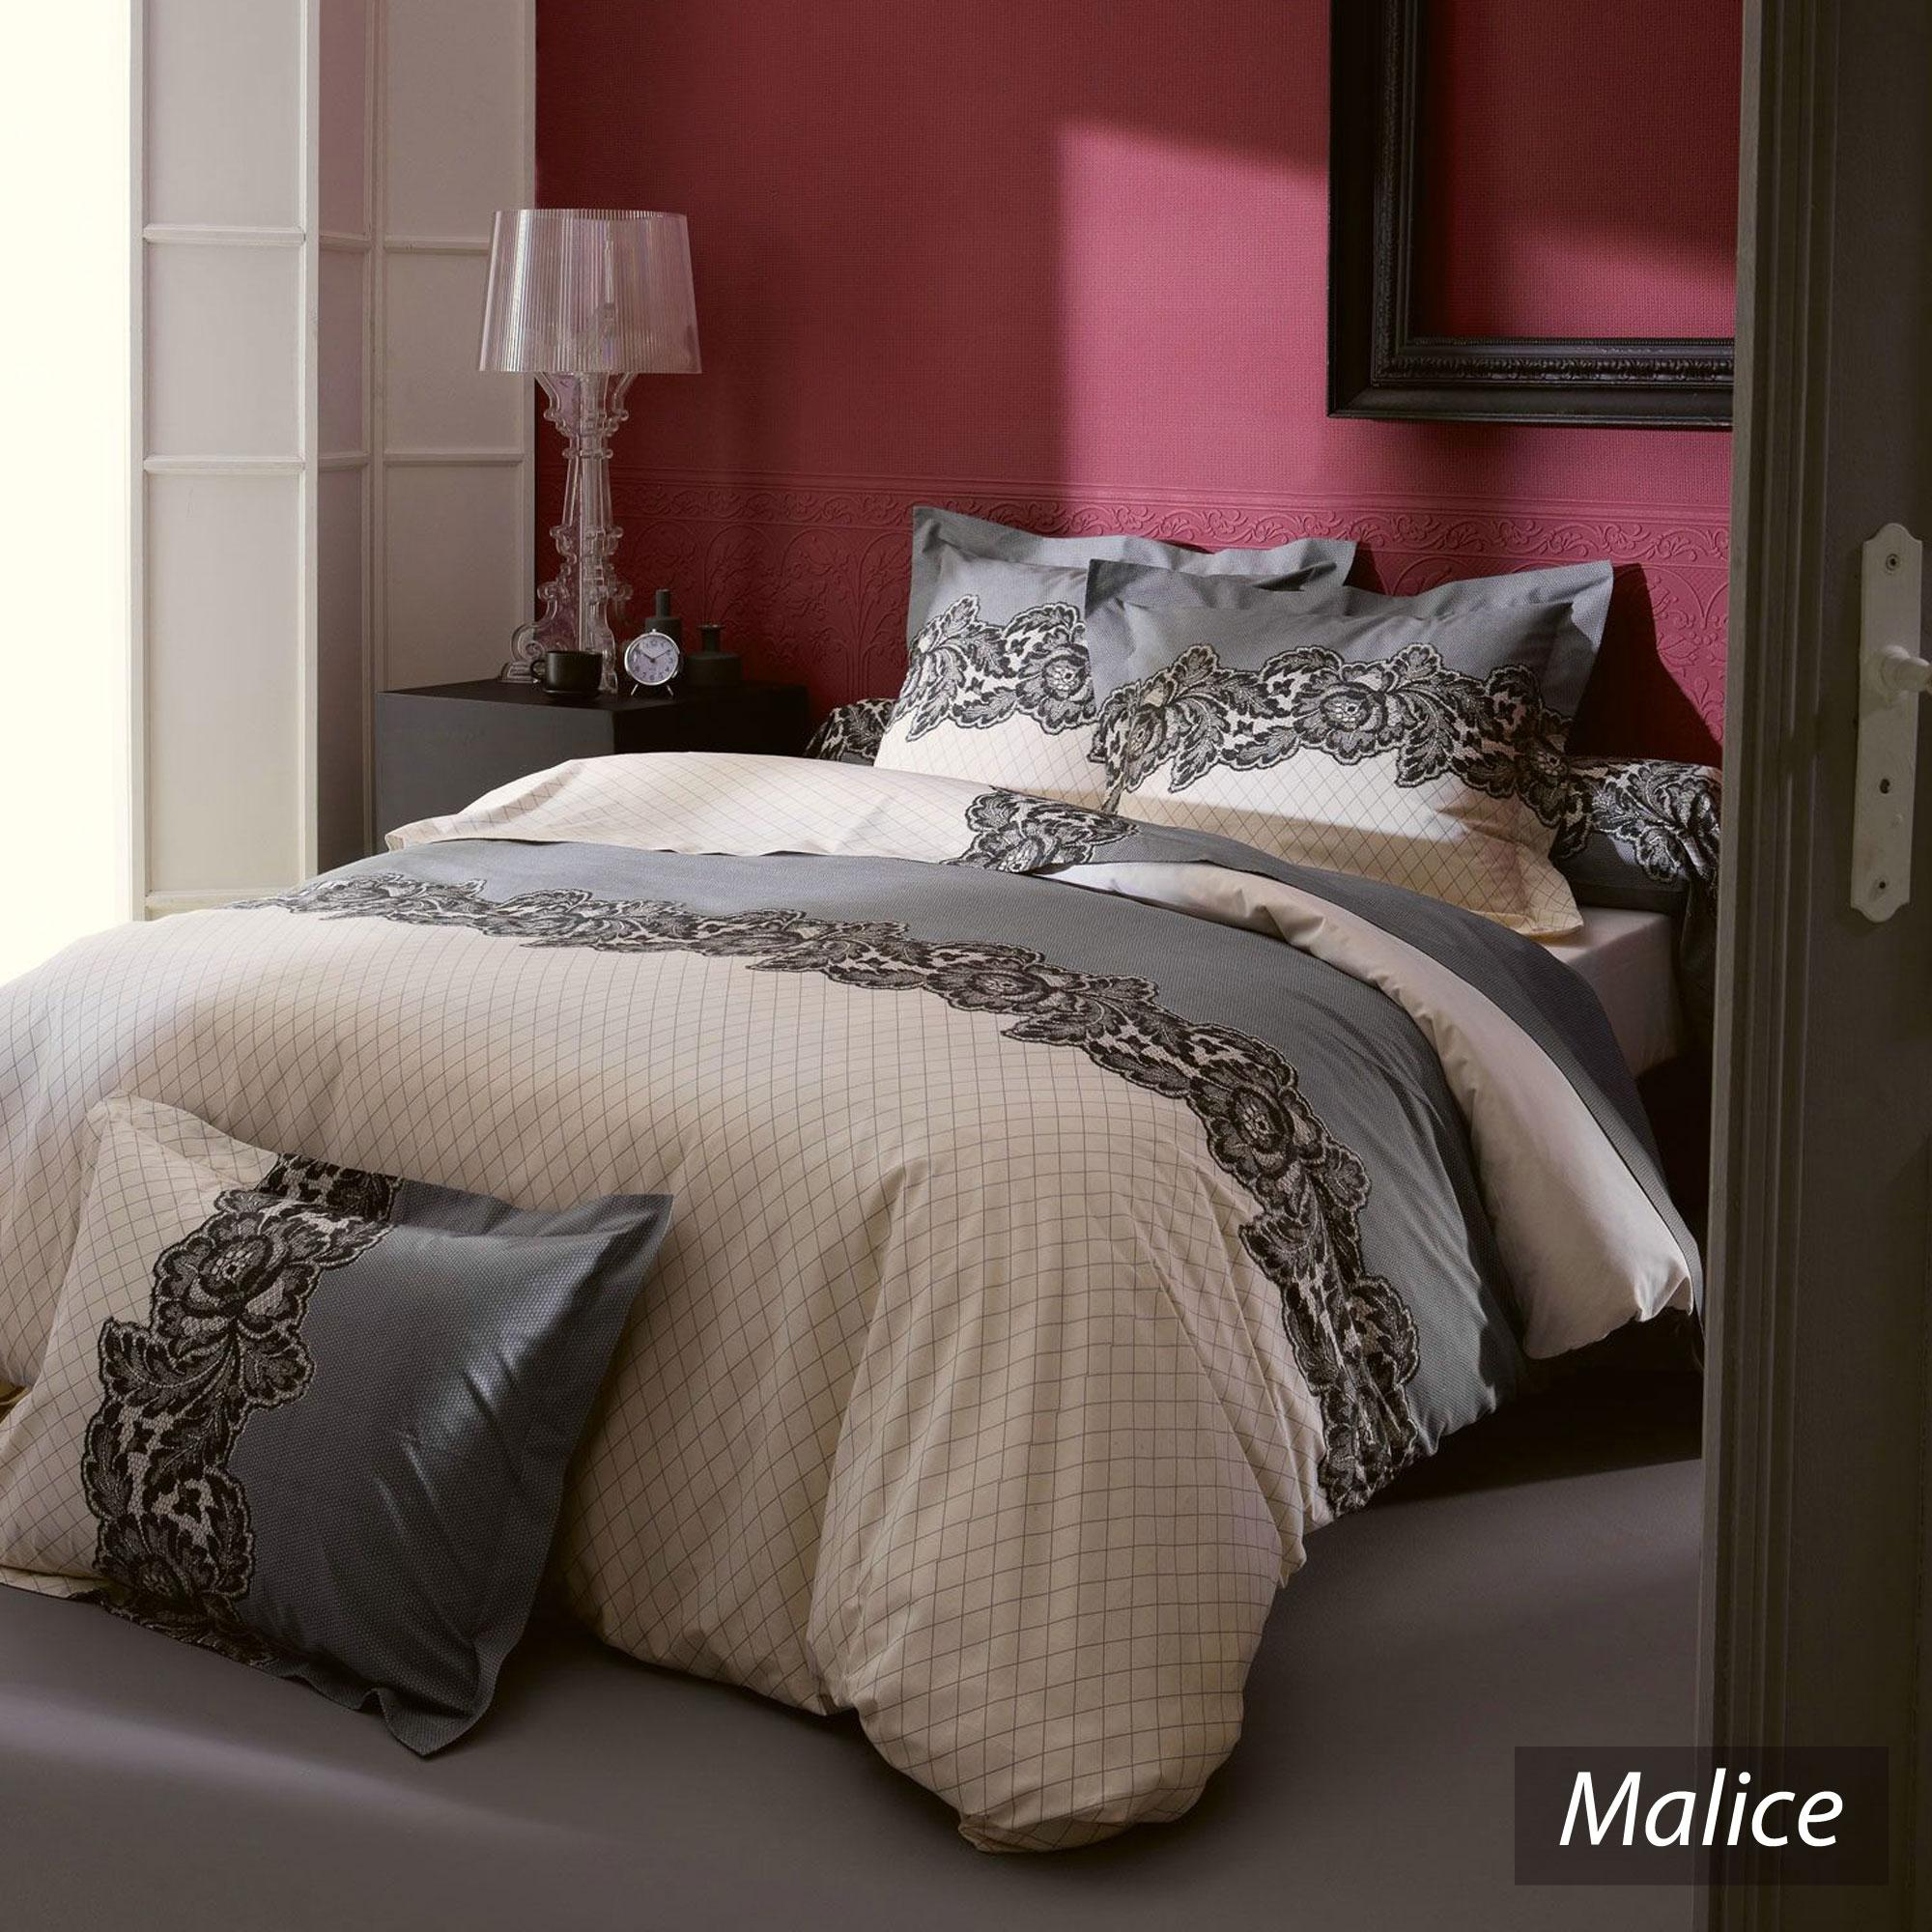 taie de traversin 140x43 cm malice linnea vente de linge. Black Bedroom Furniture Sets. Home Design Ideas